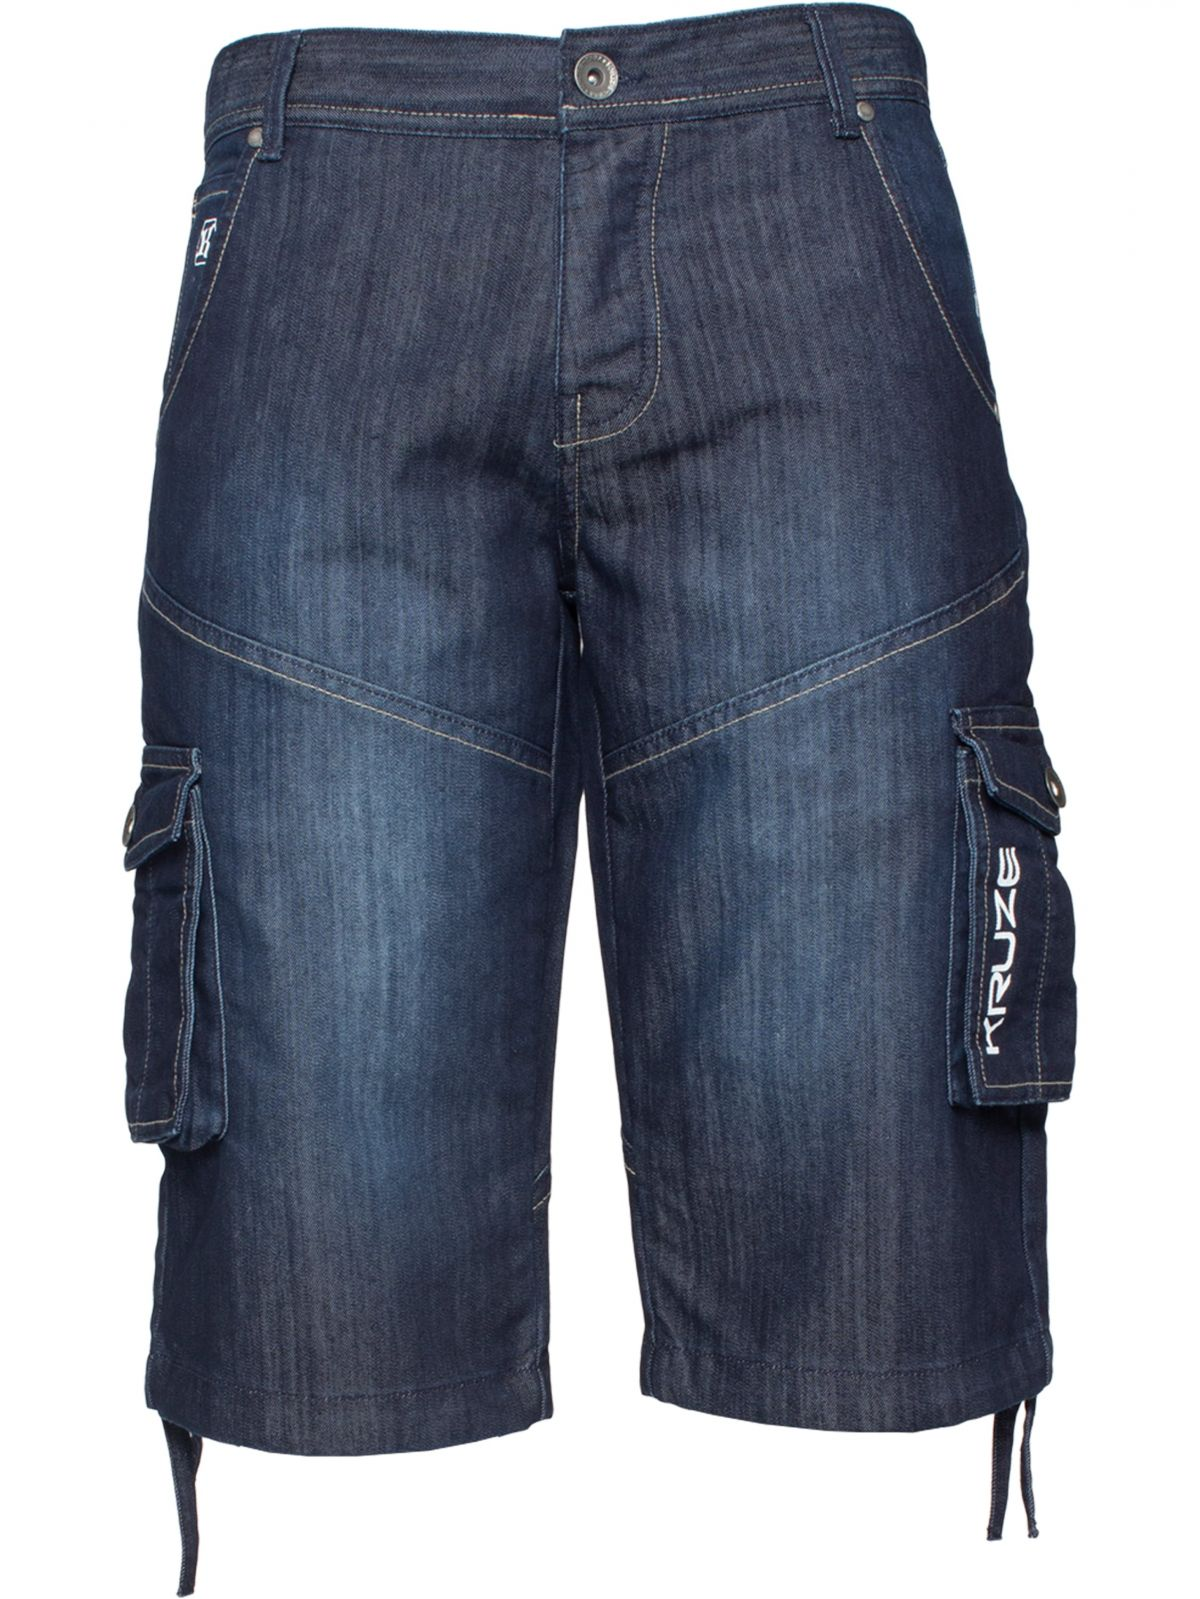 Kruze | Mens Cargo Combat Shorts Heavy Duty Denim Shorts